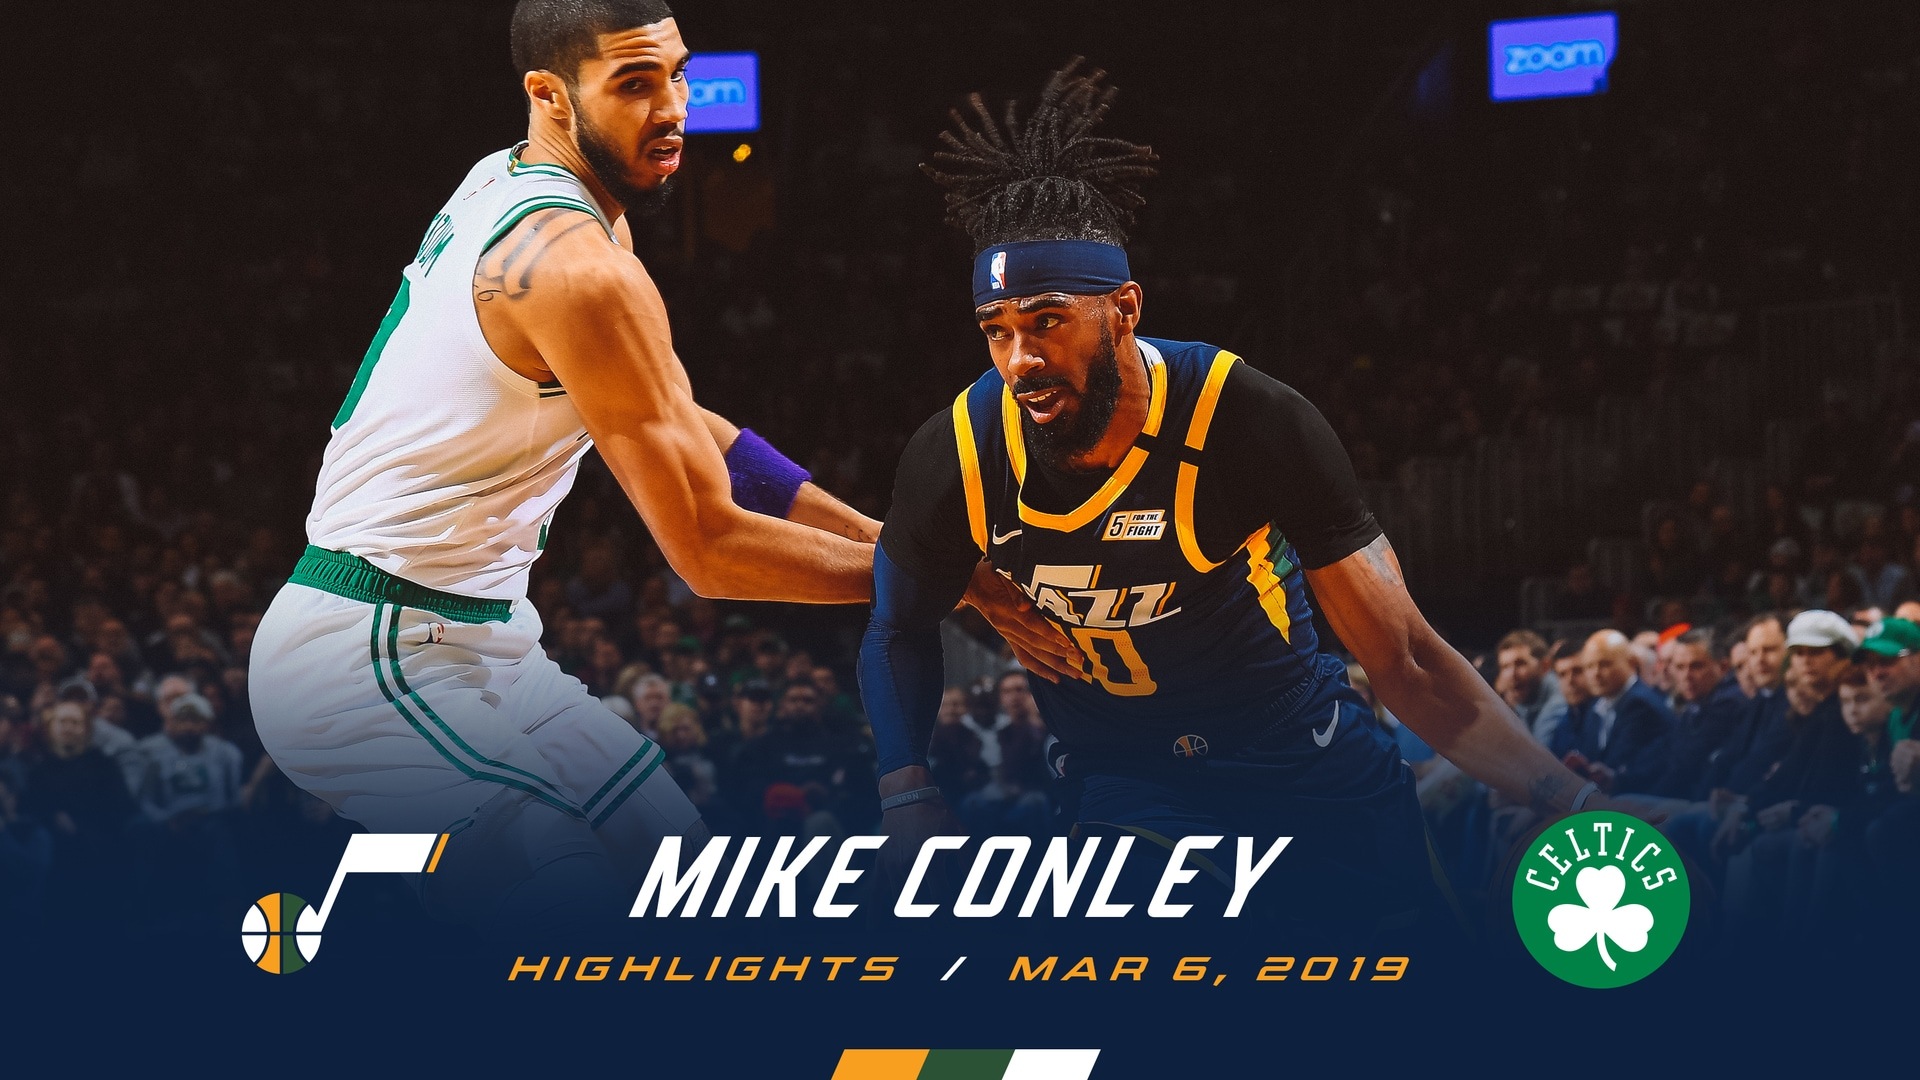 Highlights: Mike Conley—25 points, 6 3pm